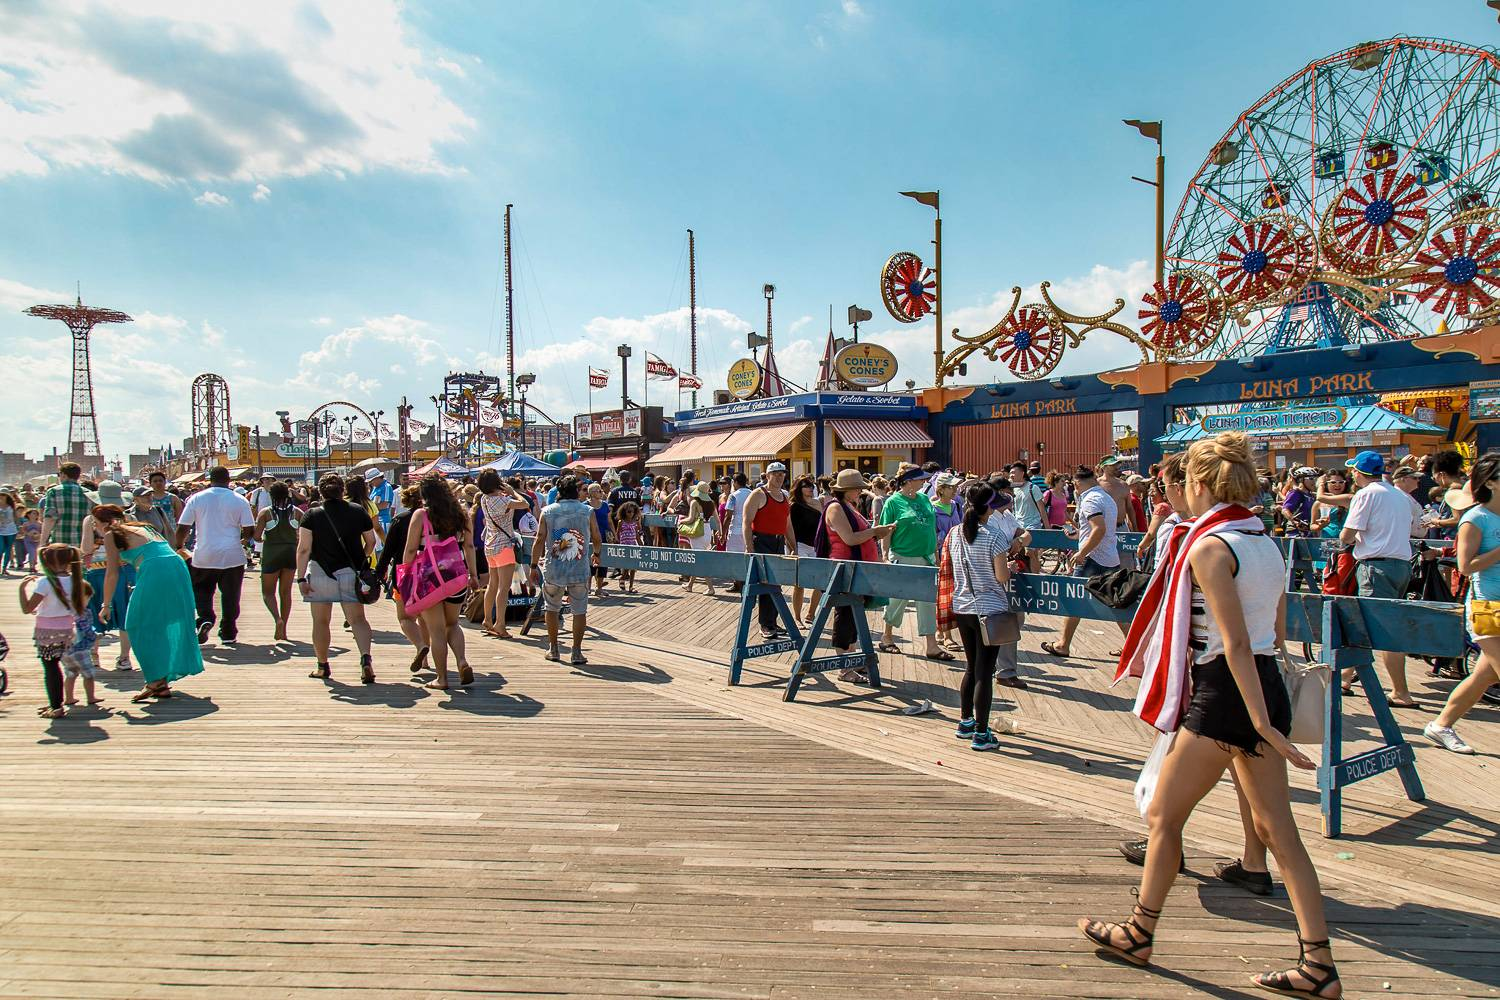 Image of crowds on the Coney Island boardwalk.